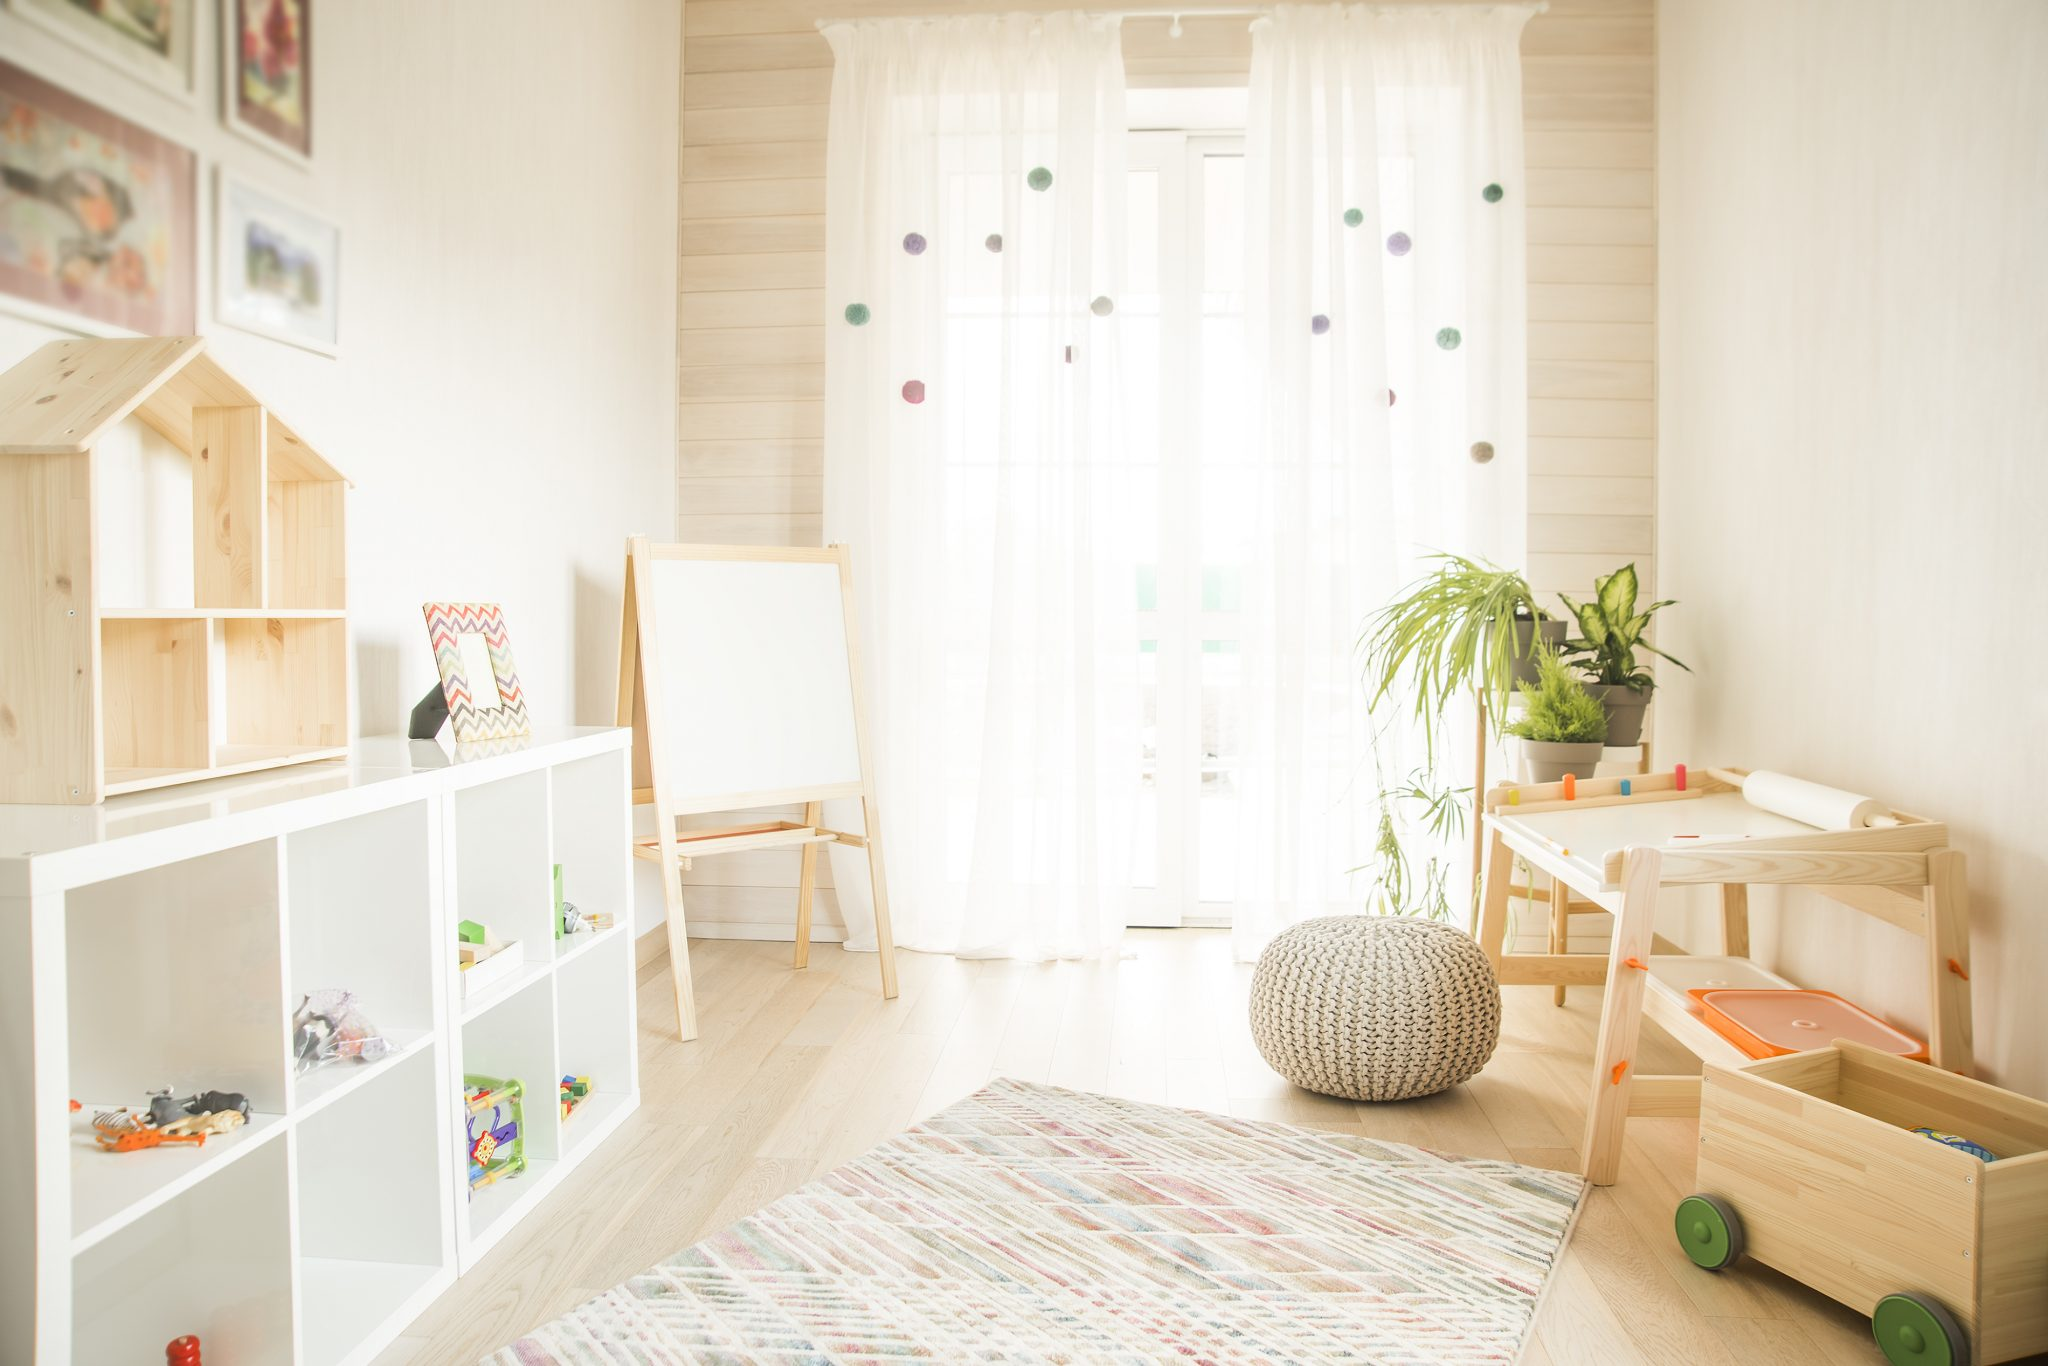 7 WAYS TO PRACTICE MONTESSORI & MINIMALIST LIVING - This Toddler Life